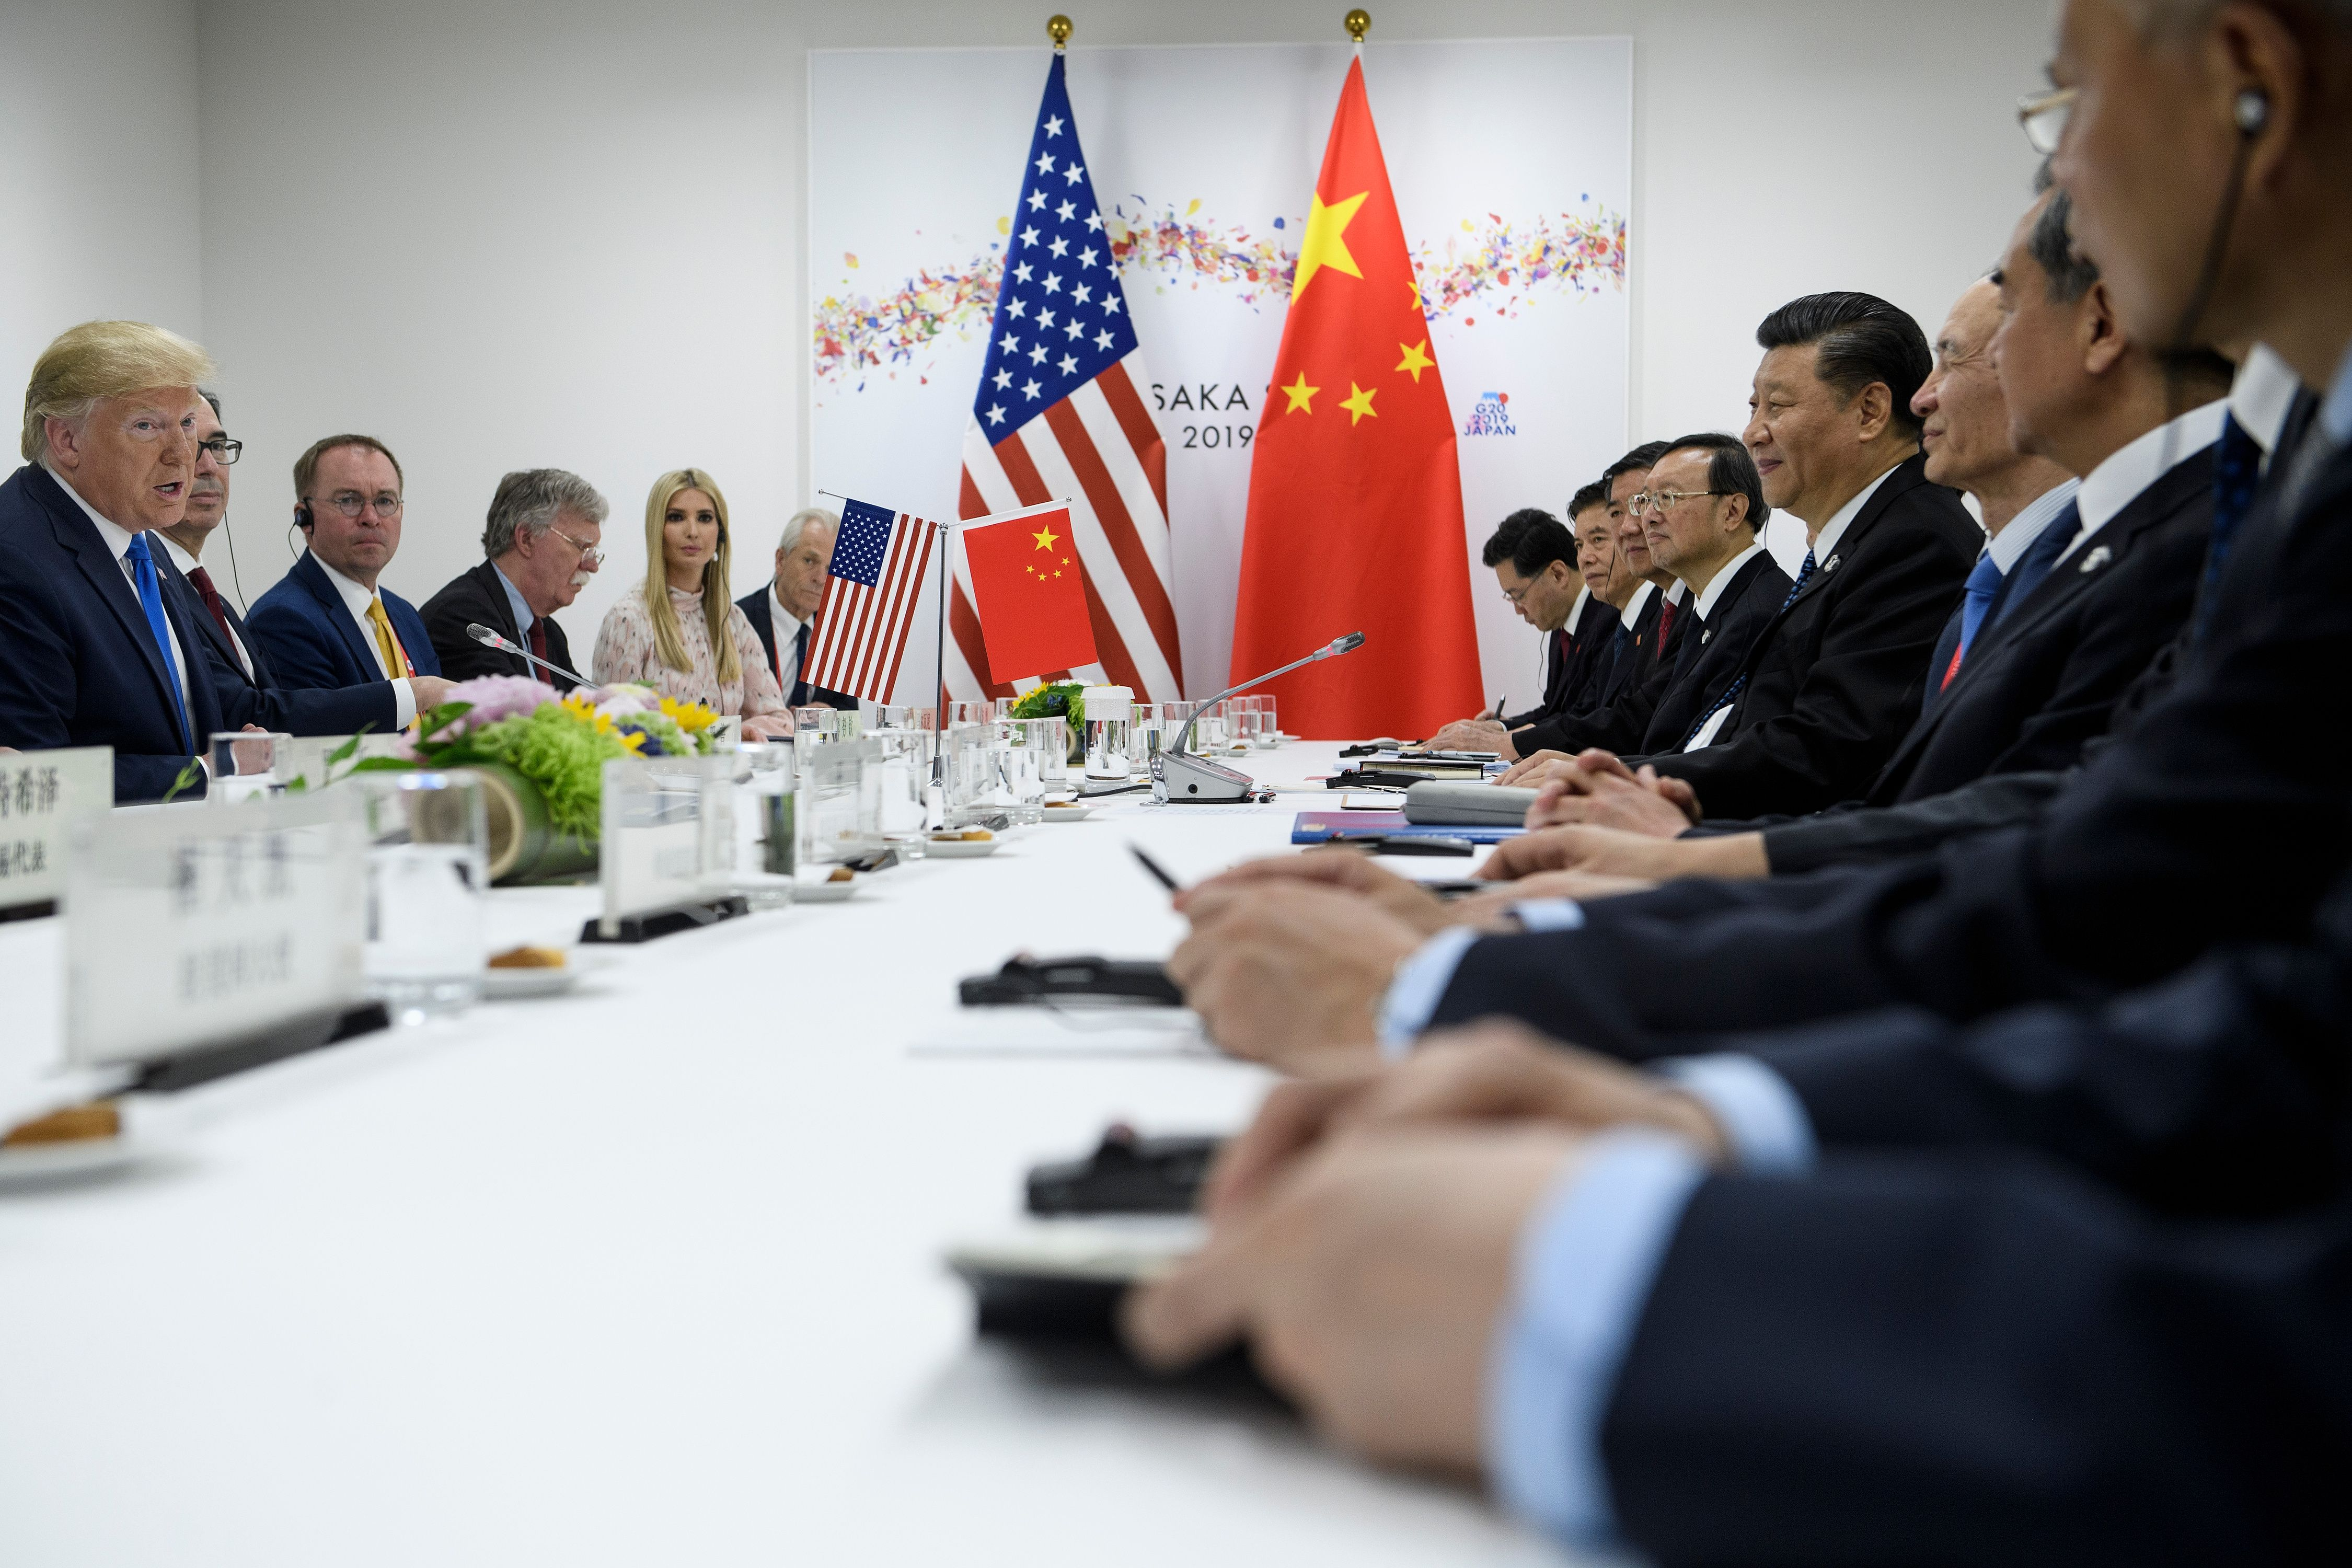 US President Donald Trump and China's President Xi Jinping attend a bilateral meeting on the sidelines of the G20 Summit in Osaka on June 29, 2019. (BRENDAN SMIALOWSKI/AFP/Getty Images)